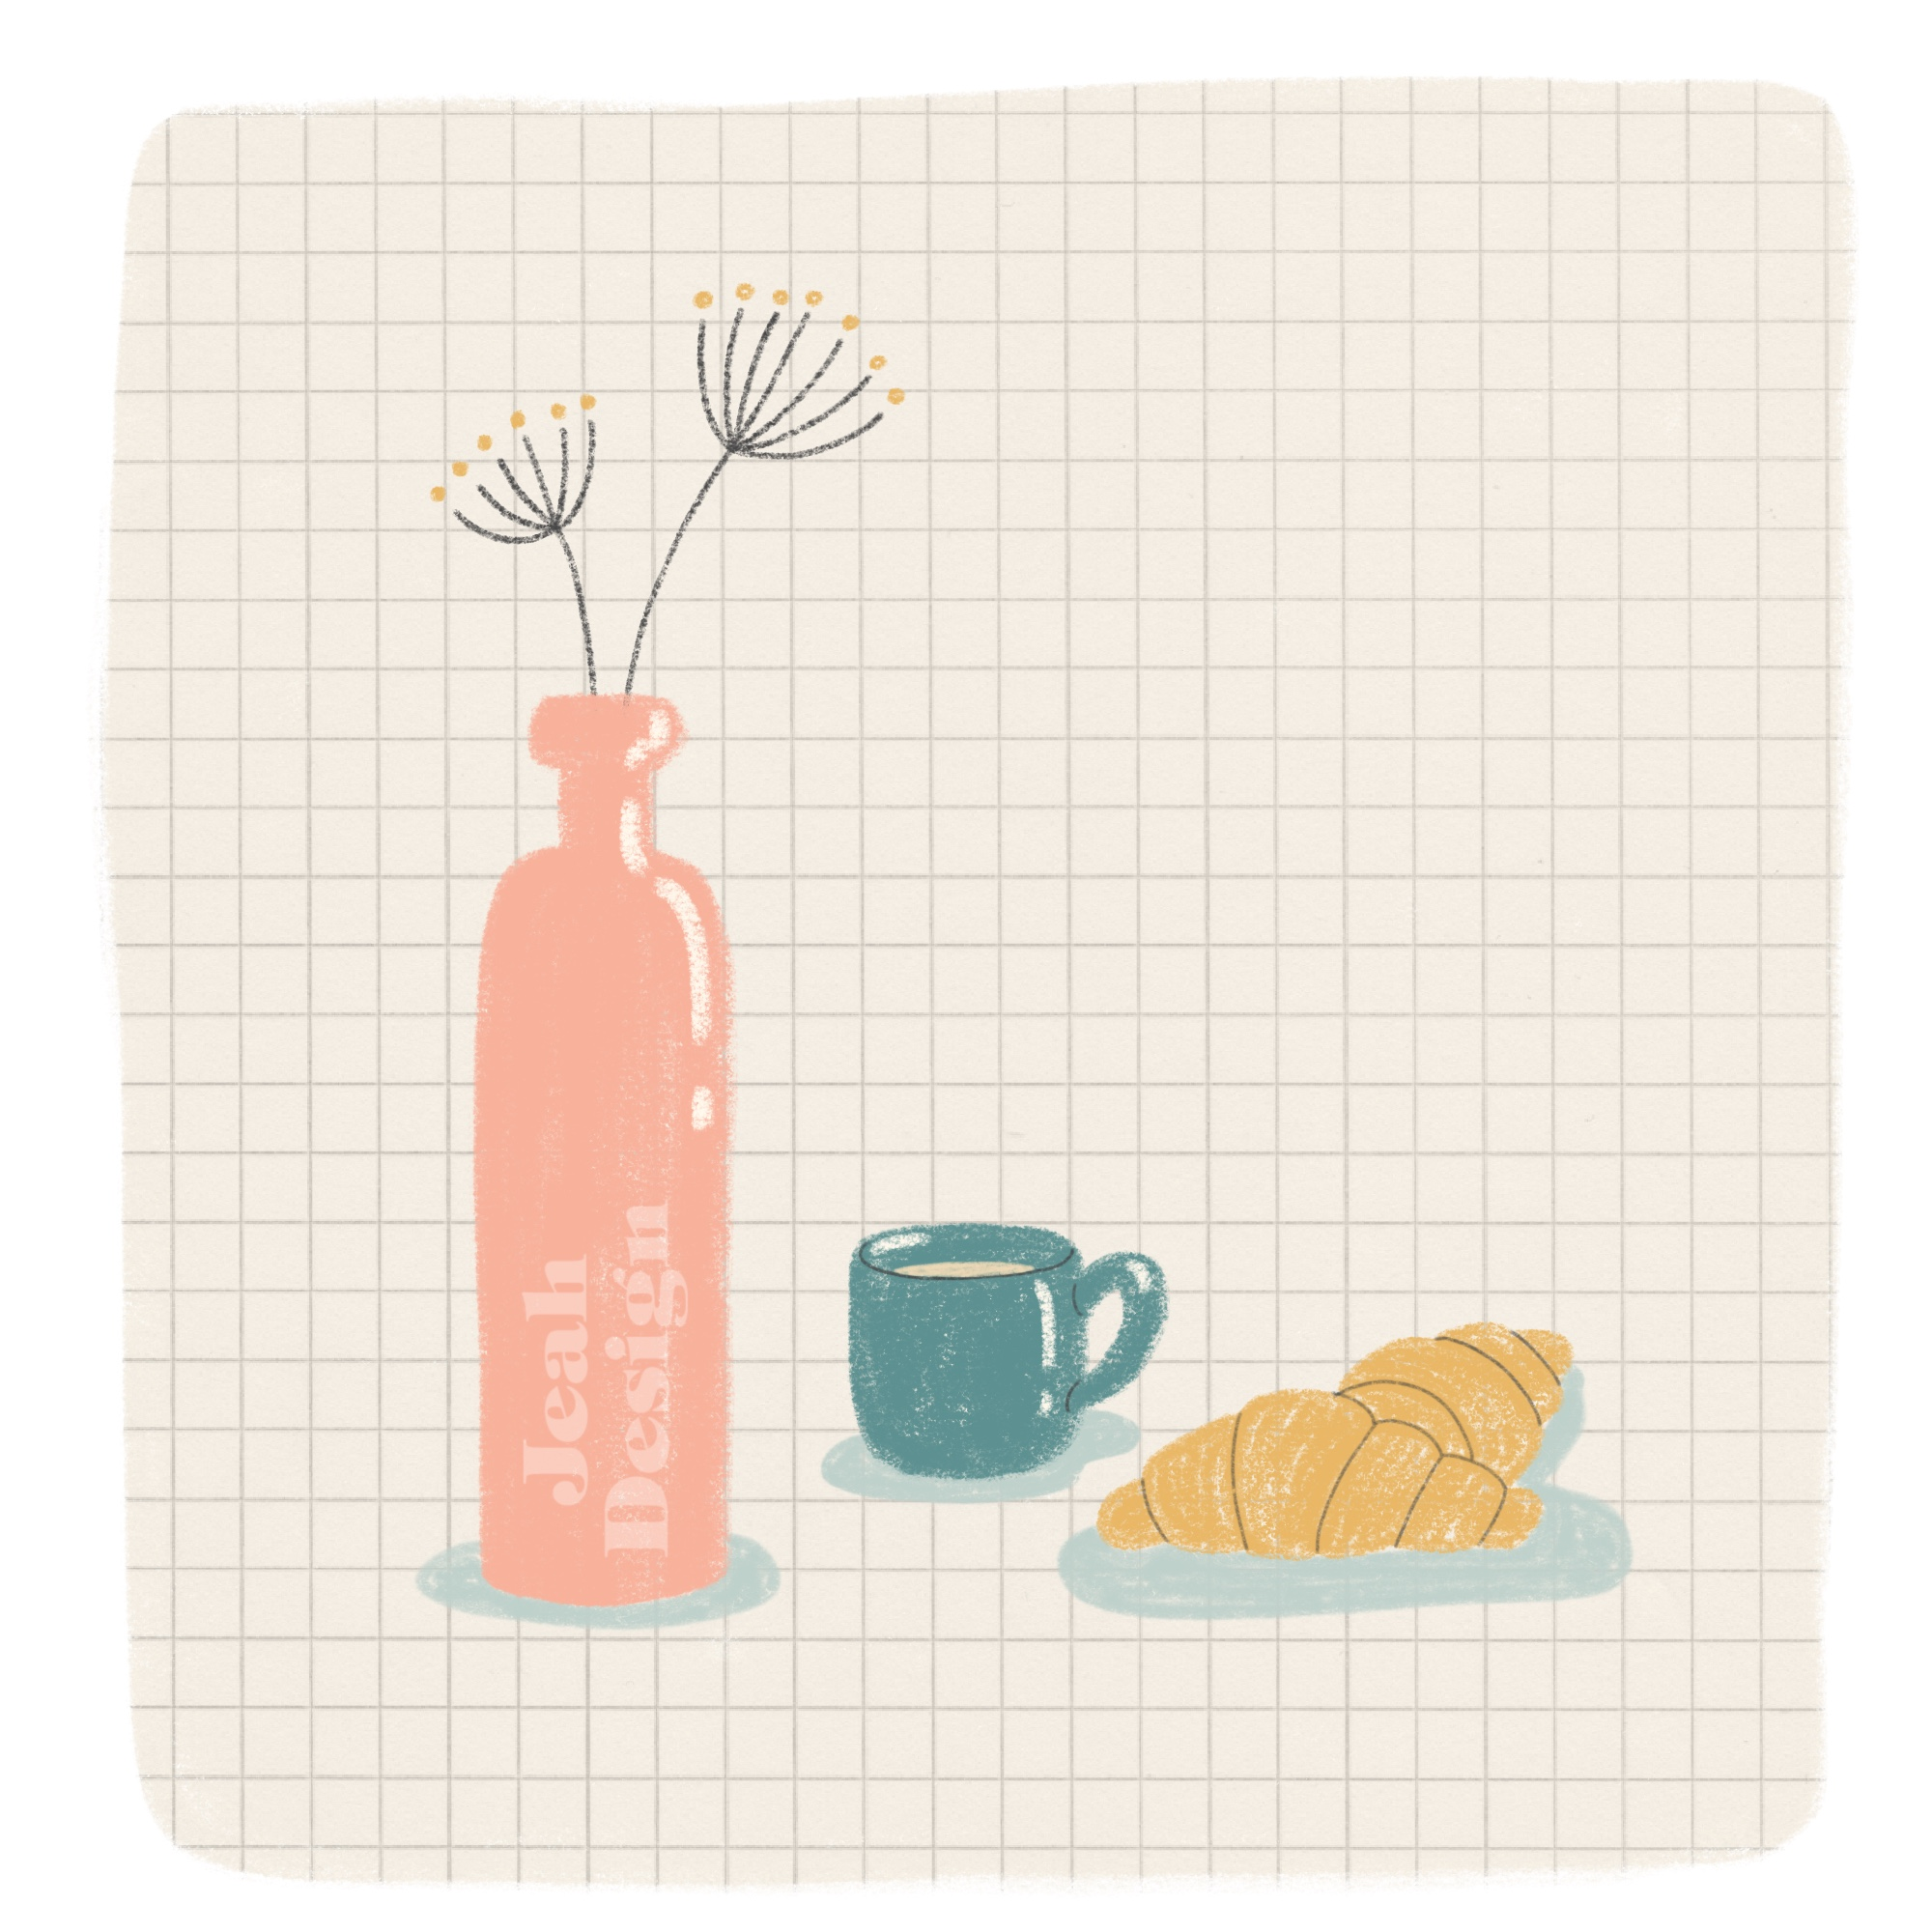 Digital illustration of a croissant, coffee mug and a bottle with flowers.